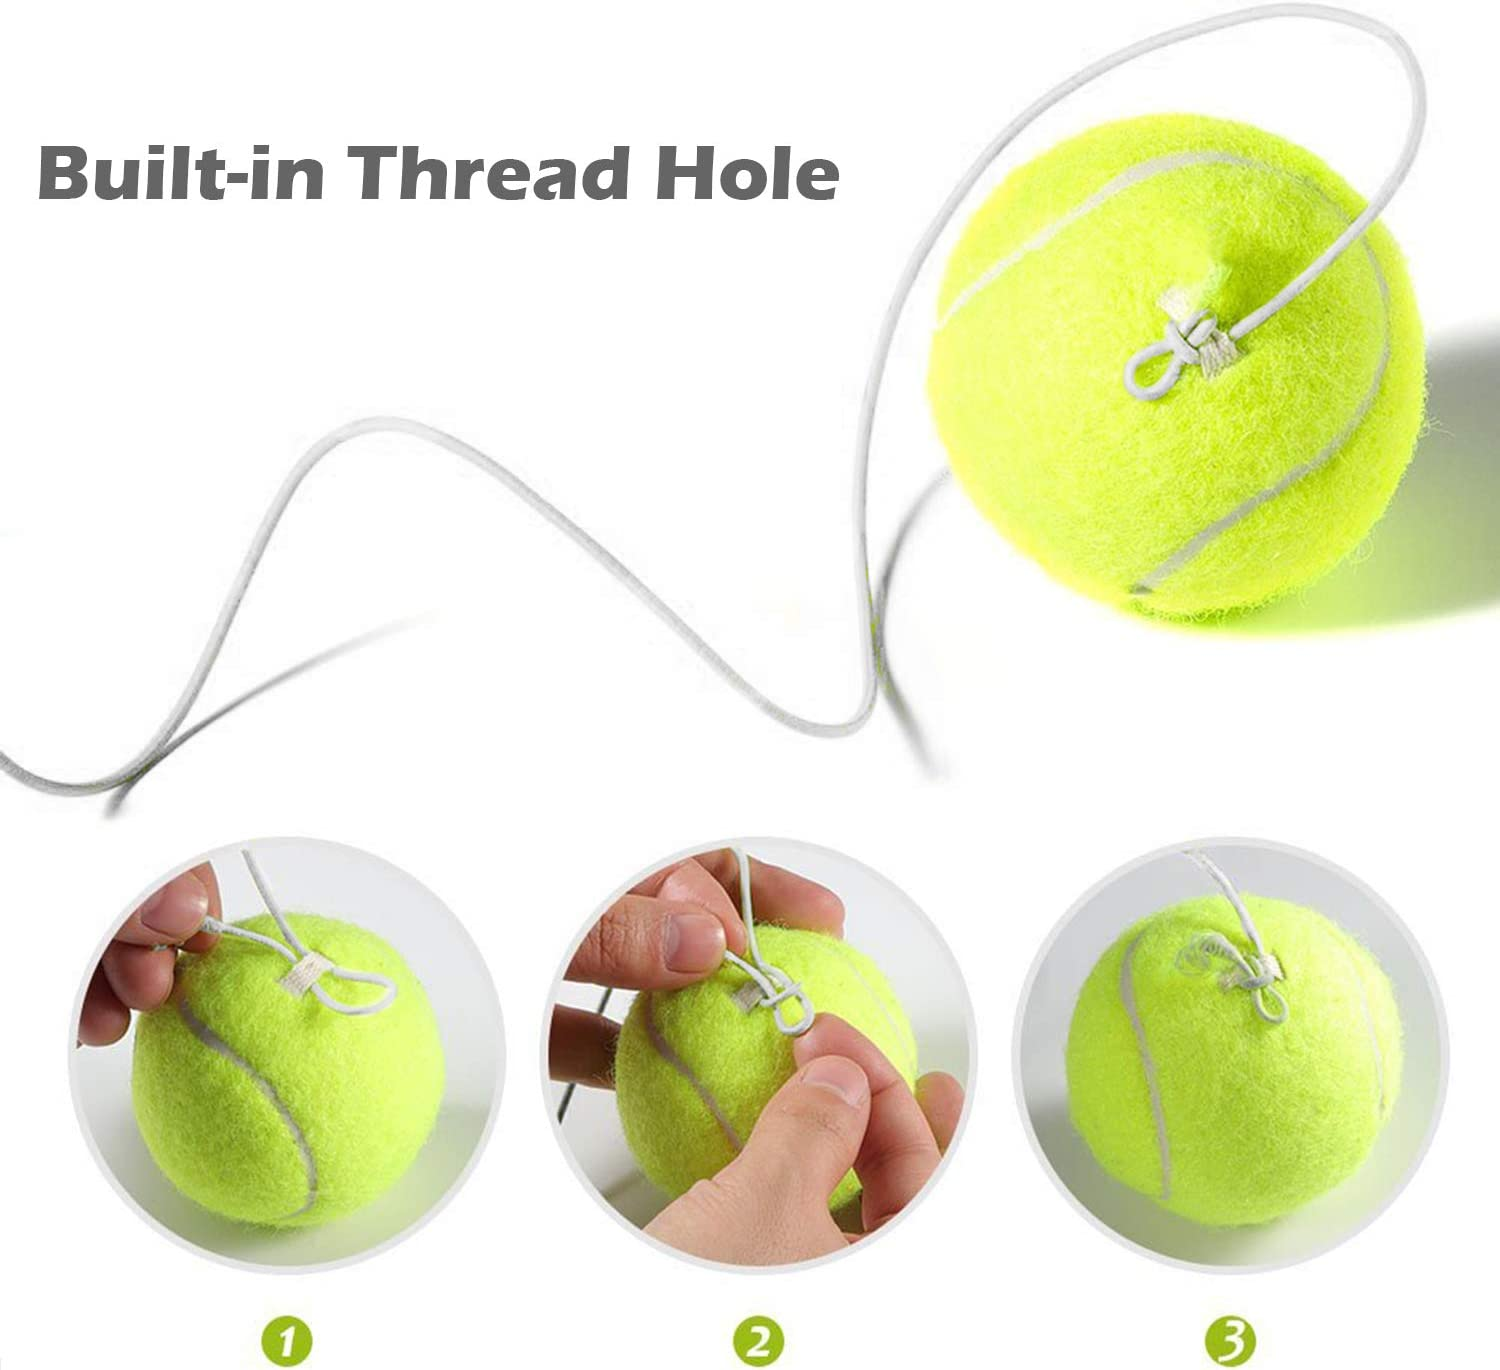 Inte Tennis Trainer Rebounder Ball | Cemented Baseboard with Rope Solo Equipment Practice Training Aid Serve Hopper Base Powerbase Self-Study Rebound Power Base Rebounder Pro Kids Fill & Dril : Pet Supplies